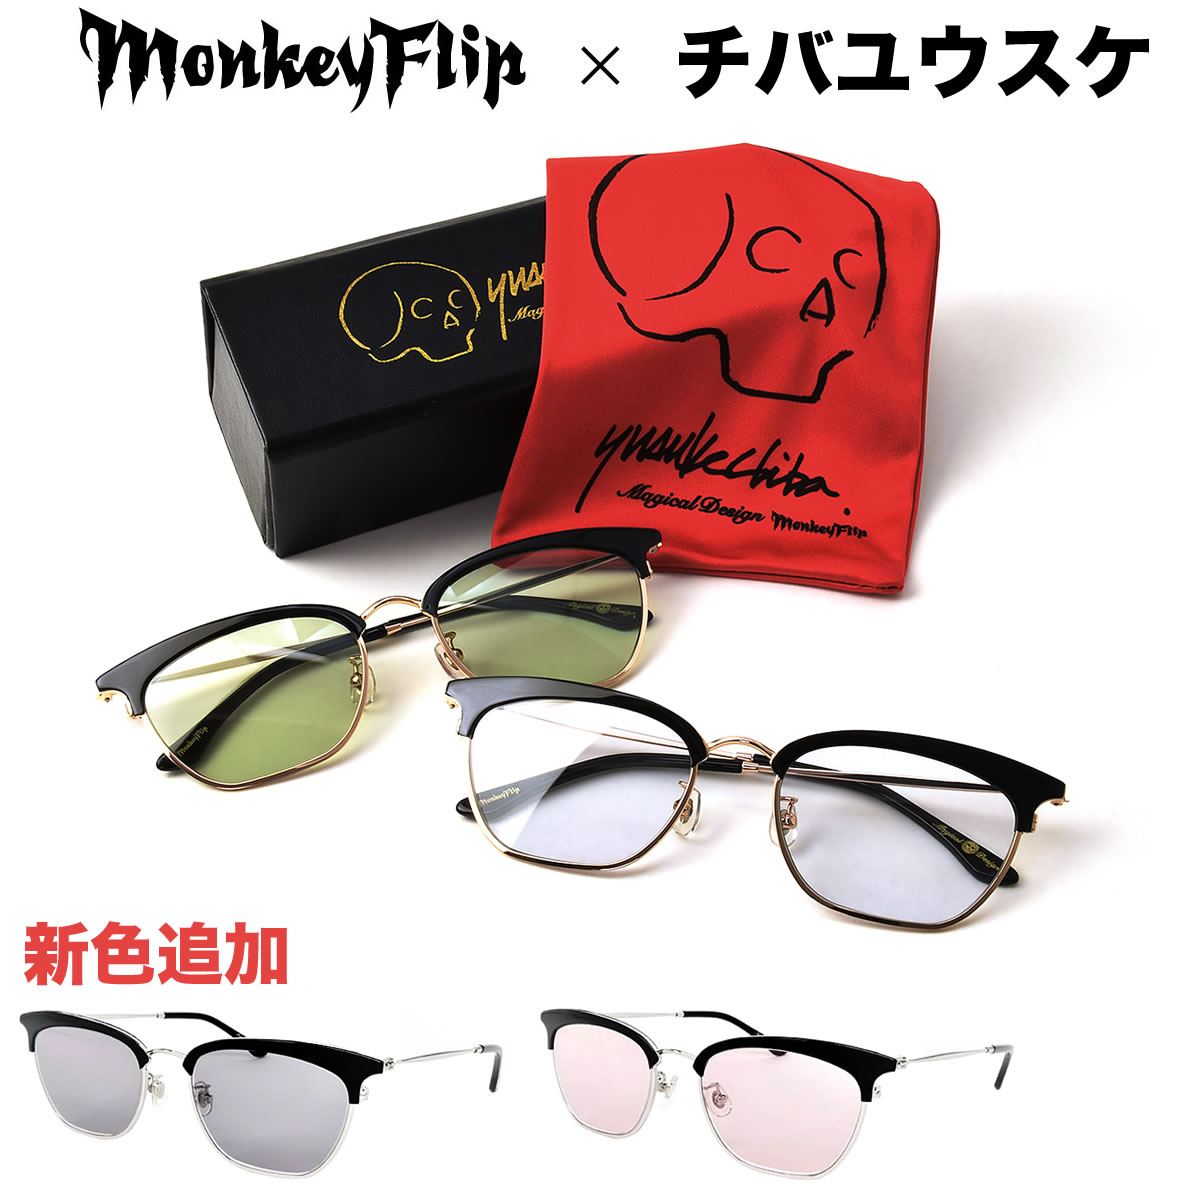 眼鏡・サングラス, サングラス  Monkey Flip MAGICAL DESIGN Monkey Flip 6